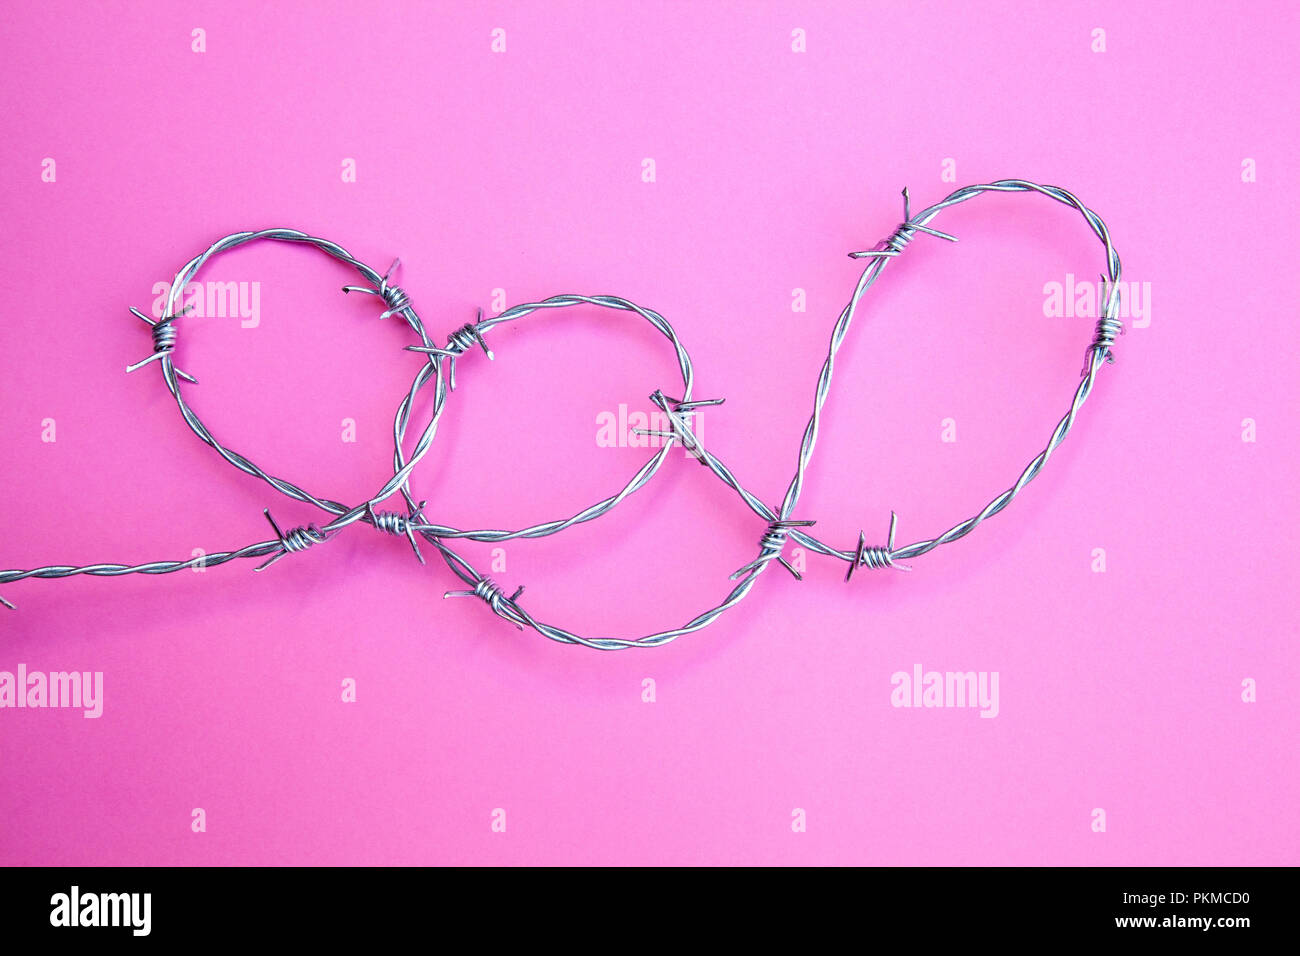 Barb Wire Loops on Pink Ground - Stock Image